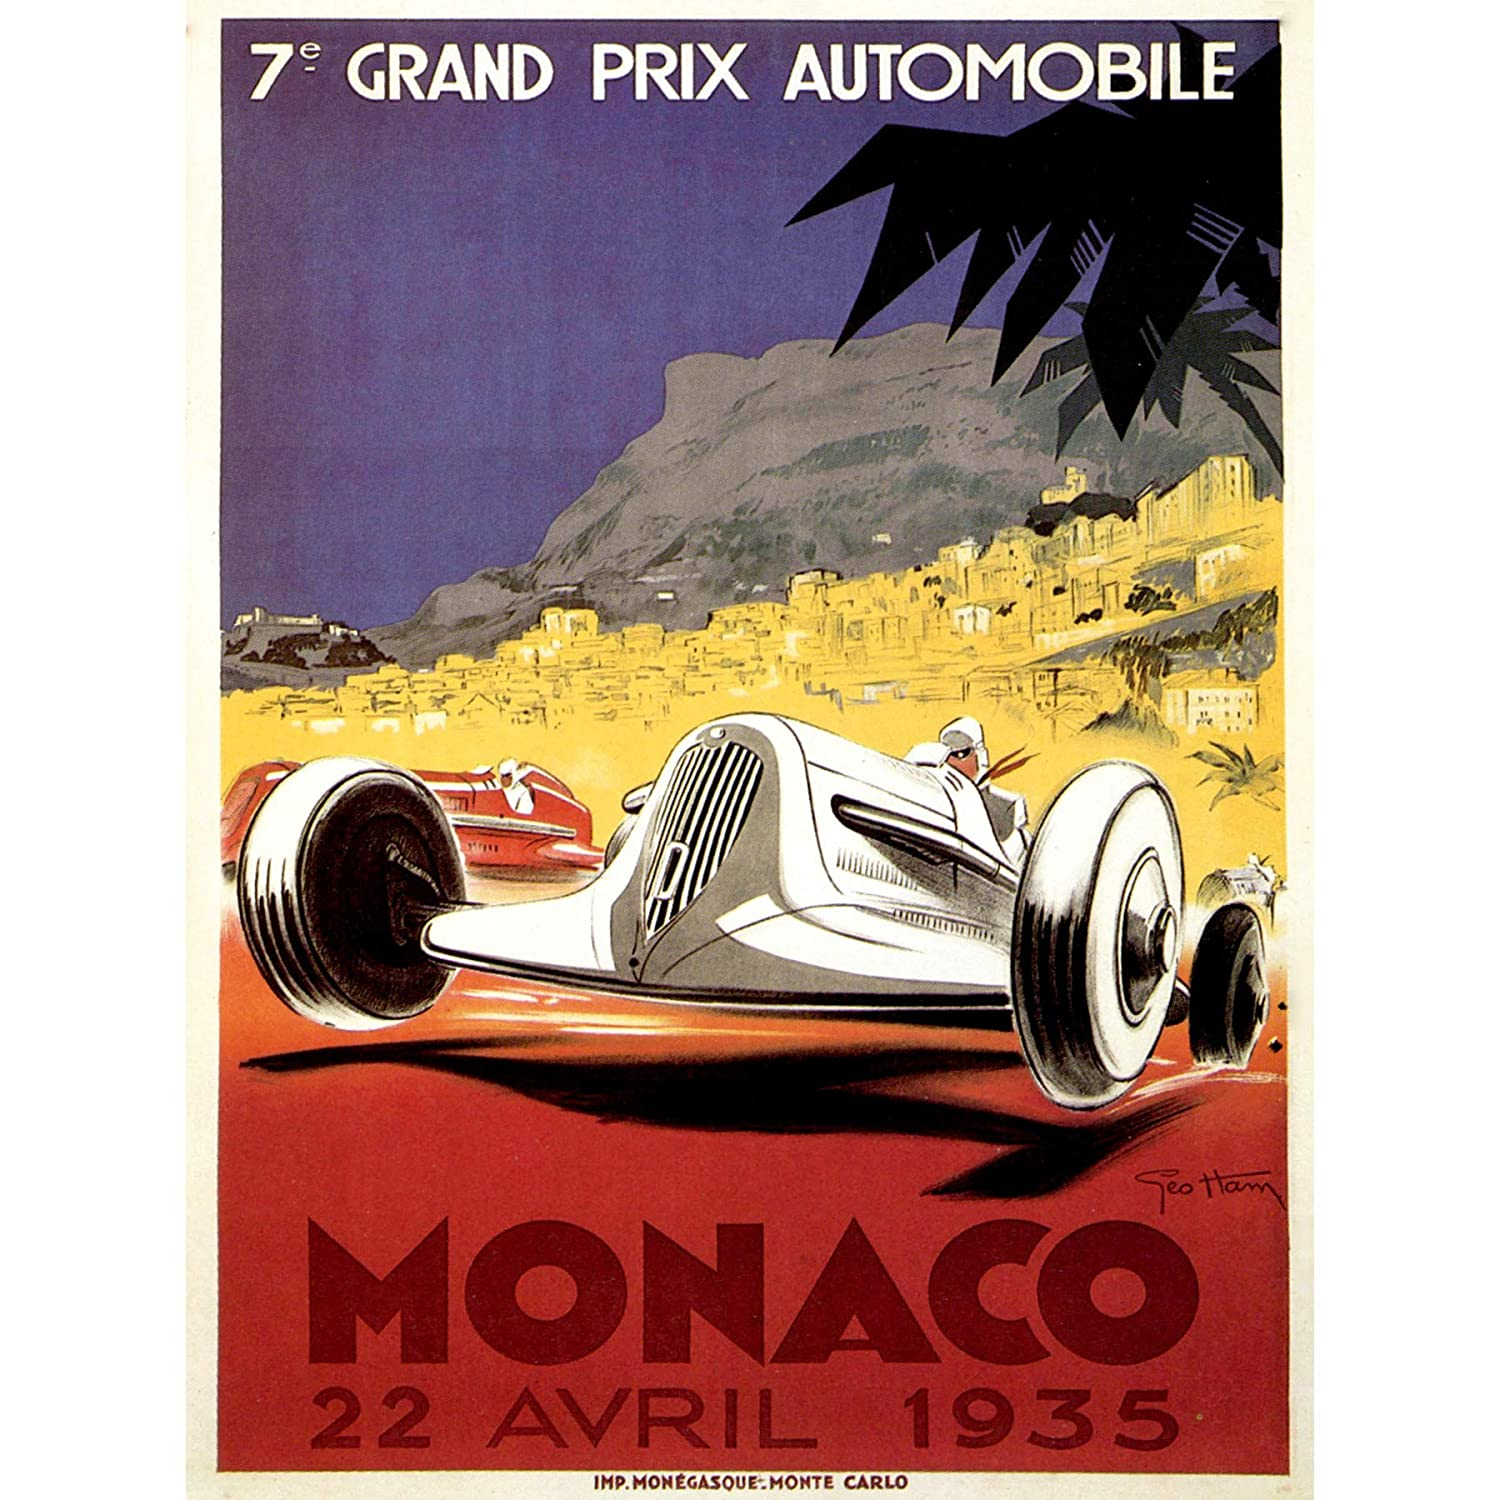 SPORT EXHIBITION RACE MOTOR GRAND PRIX 1935 MONTE CARLO MONACO 30X40 CMS  FINE ART PRINT ART POSTER BB9447: Amazon.co.uk: Kitchen & Home